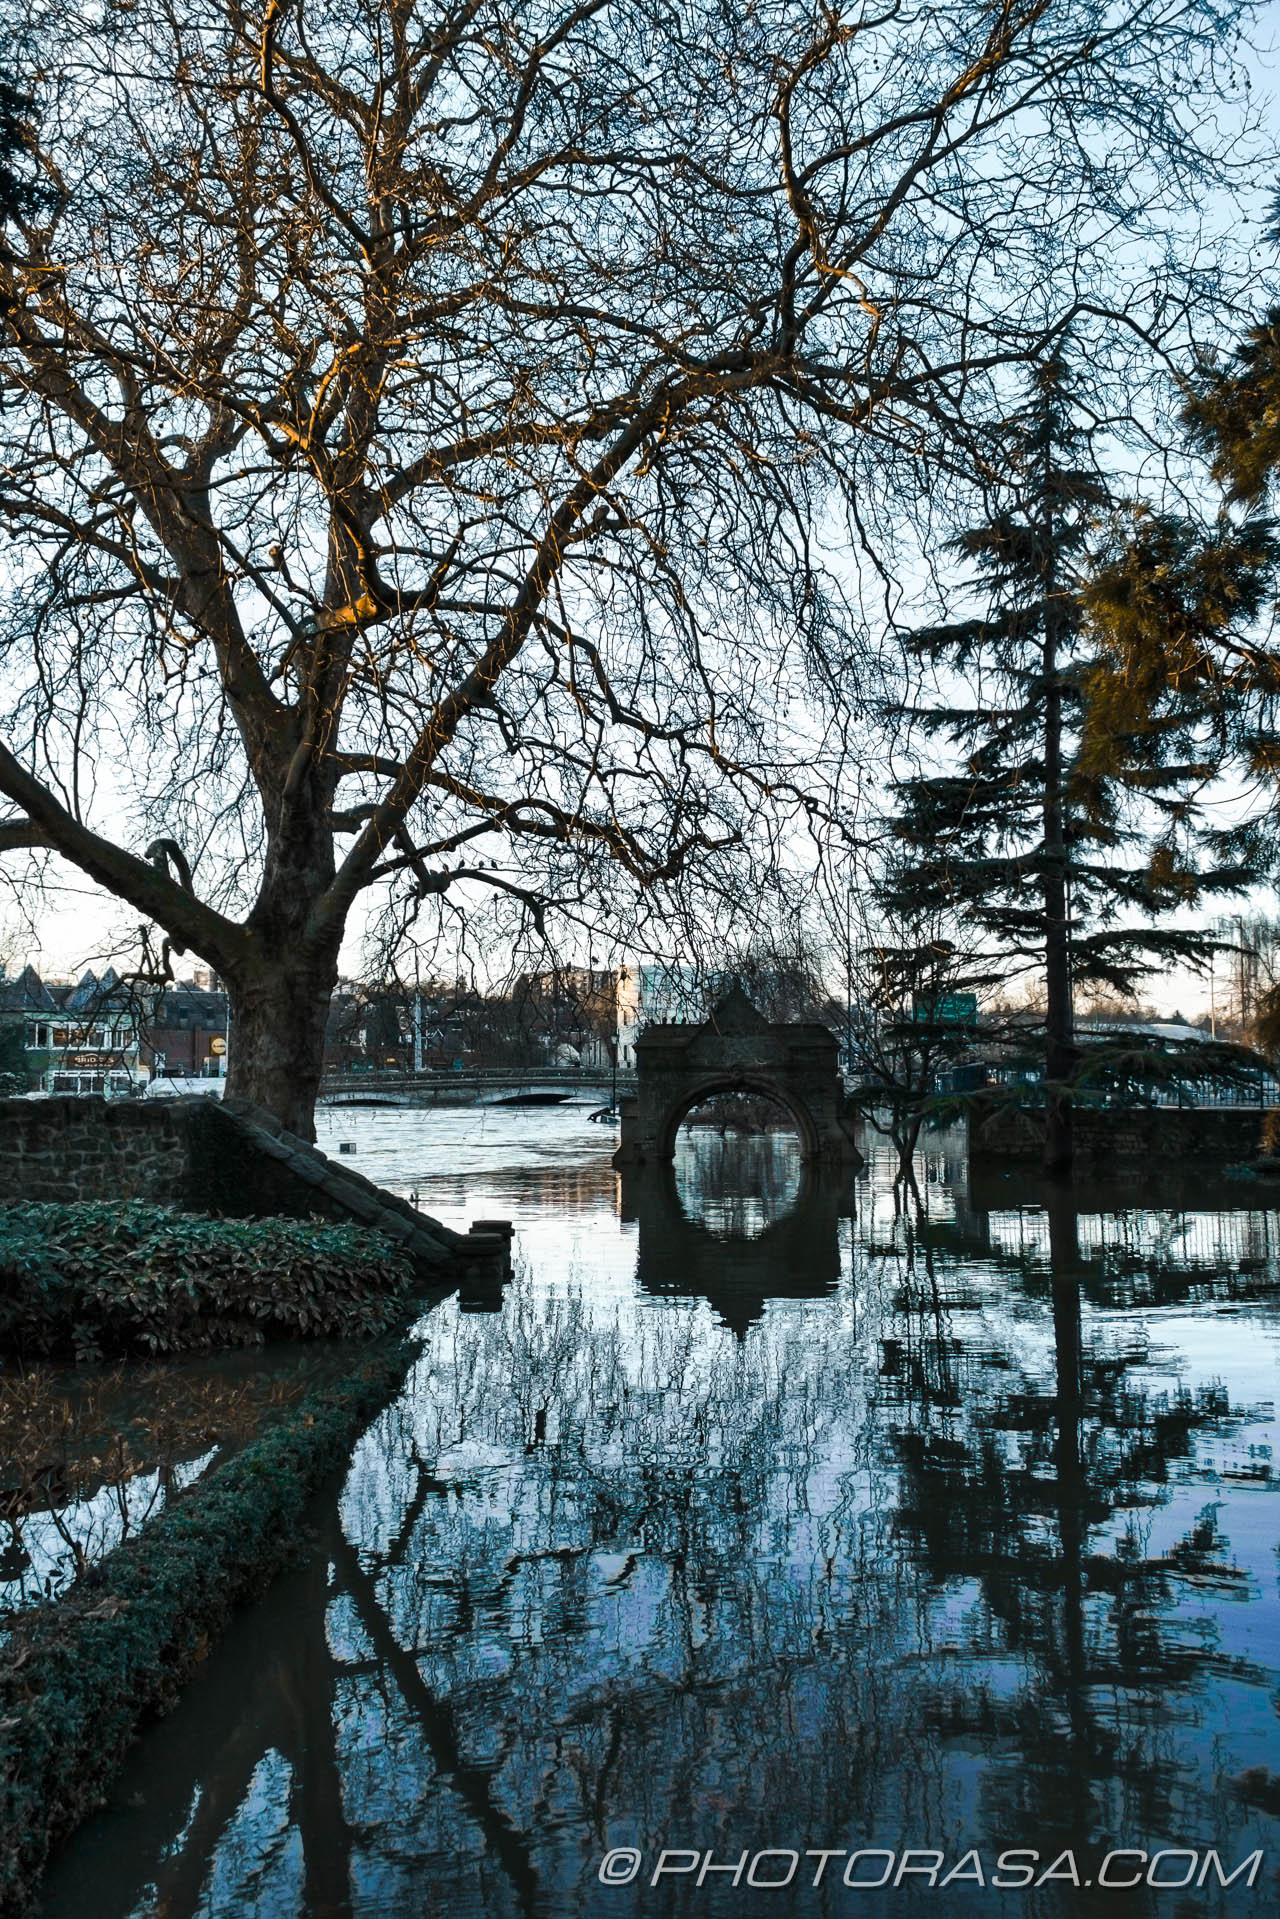 http://photorasa.com/wet-xmas-maidstone-river-medway-floods-town-centre/submerged-entrance-to-archbishops-palace/